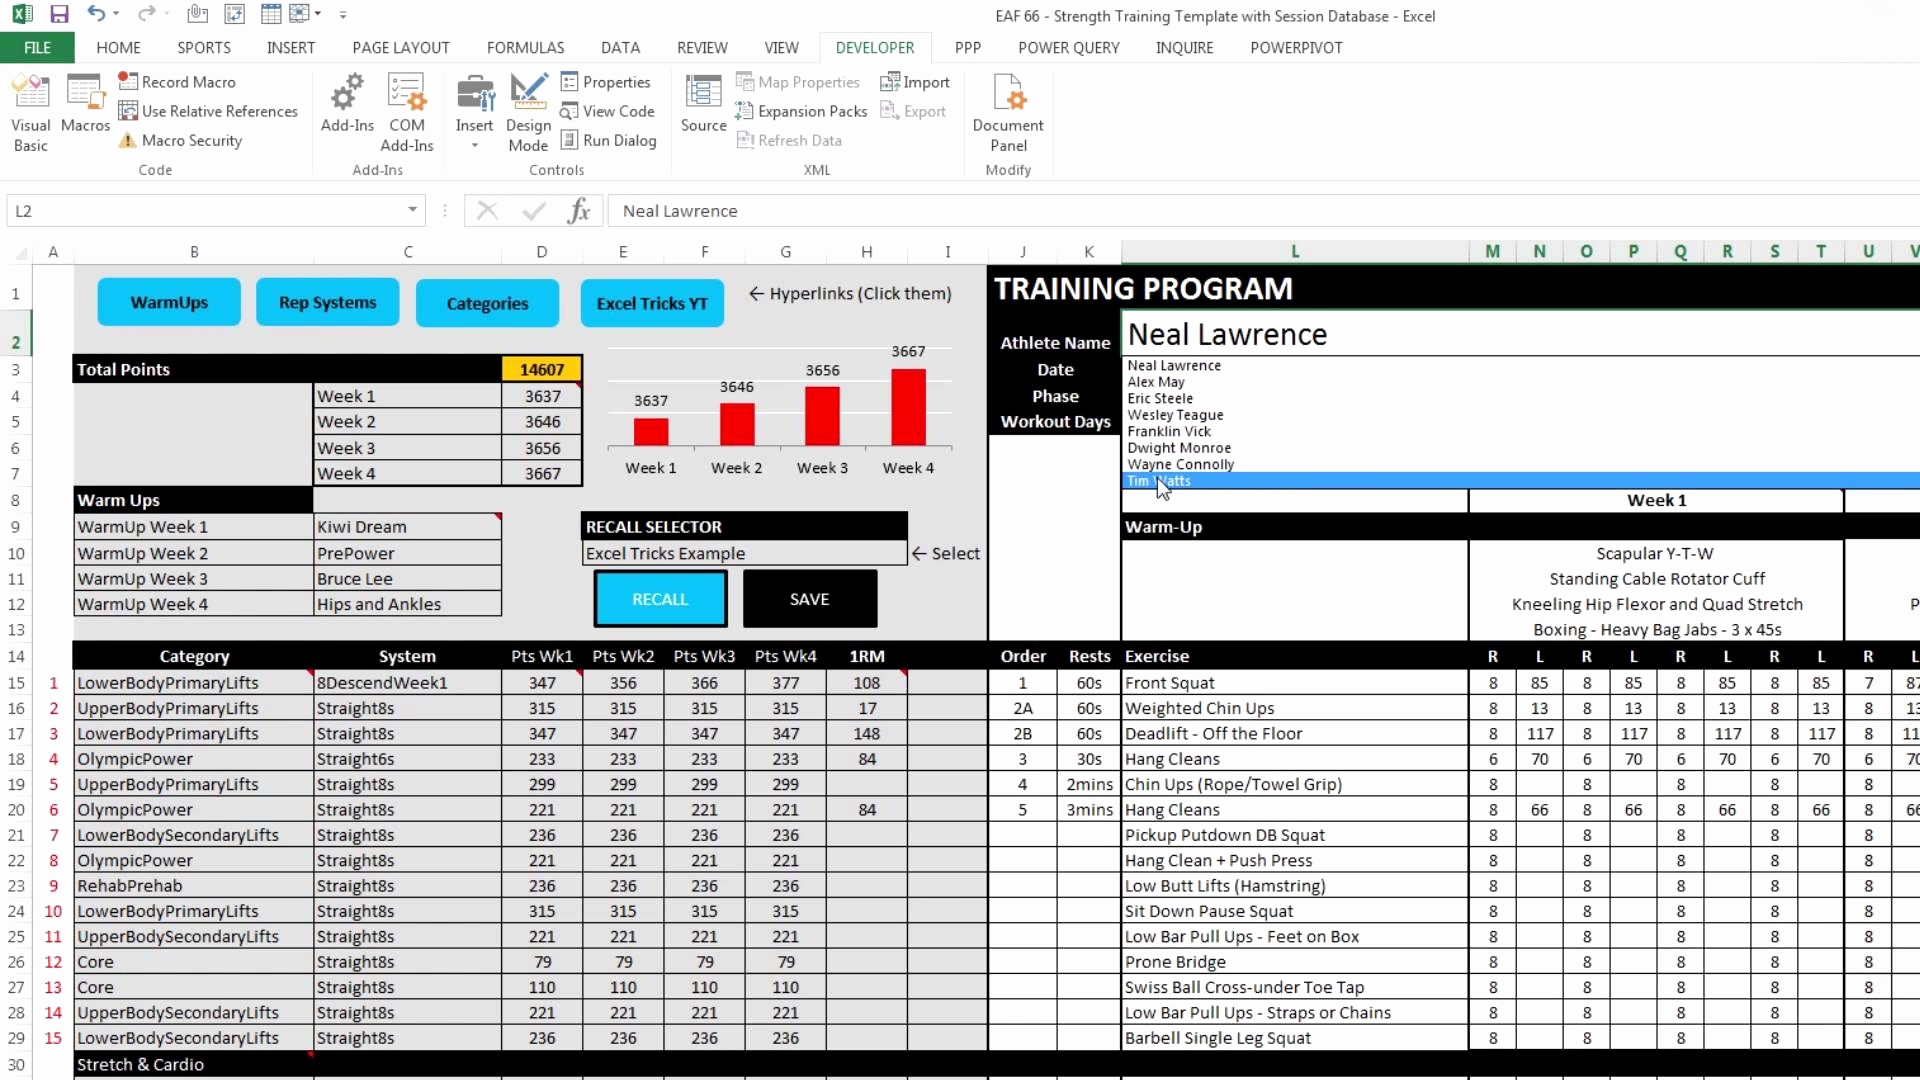 50 Inspirational Excel Crm Template Software - Document Ideas With Excel Crm Template Software